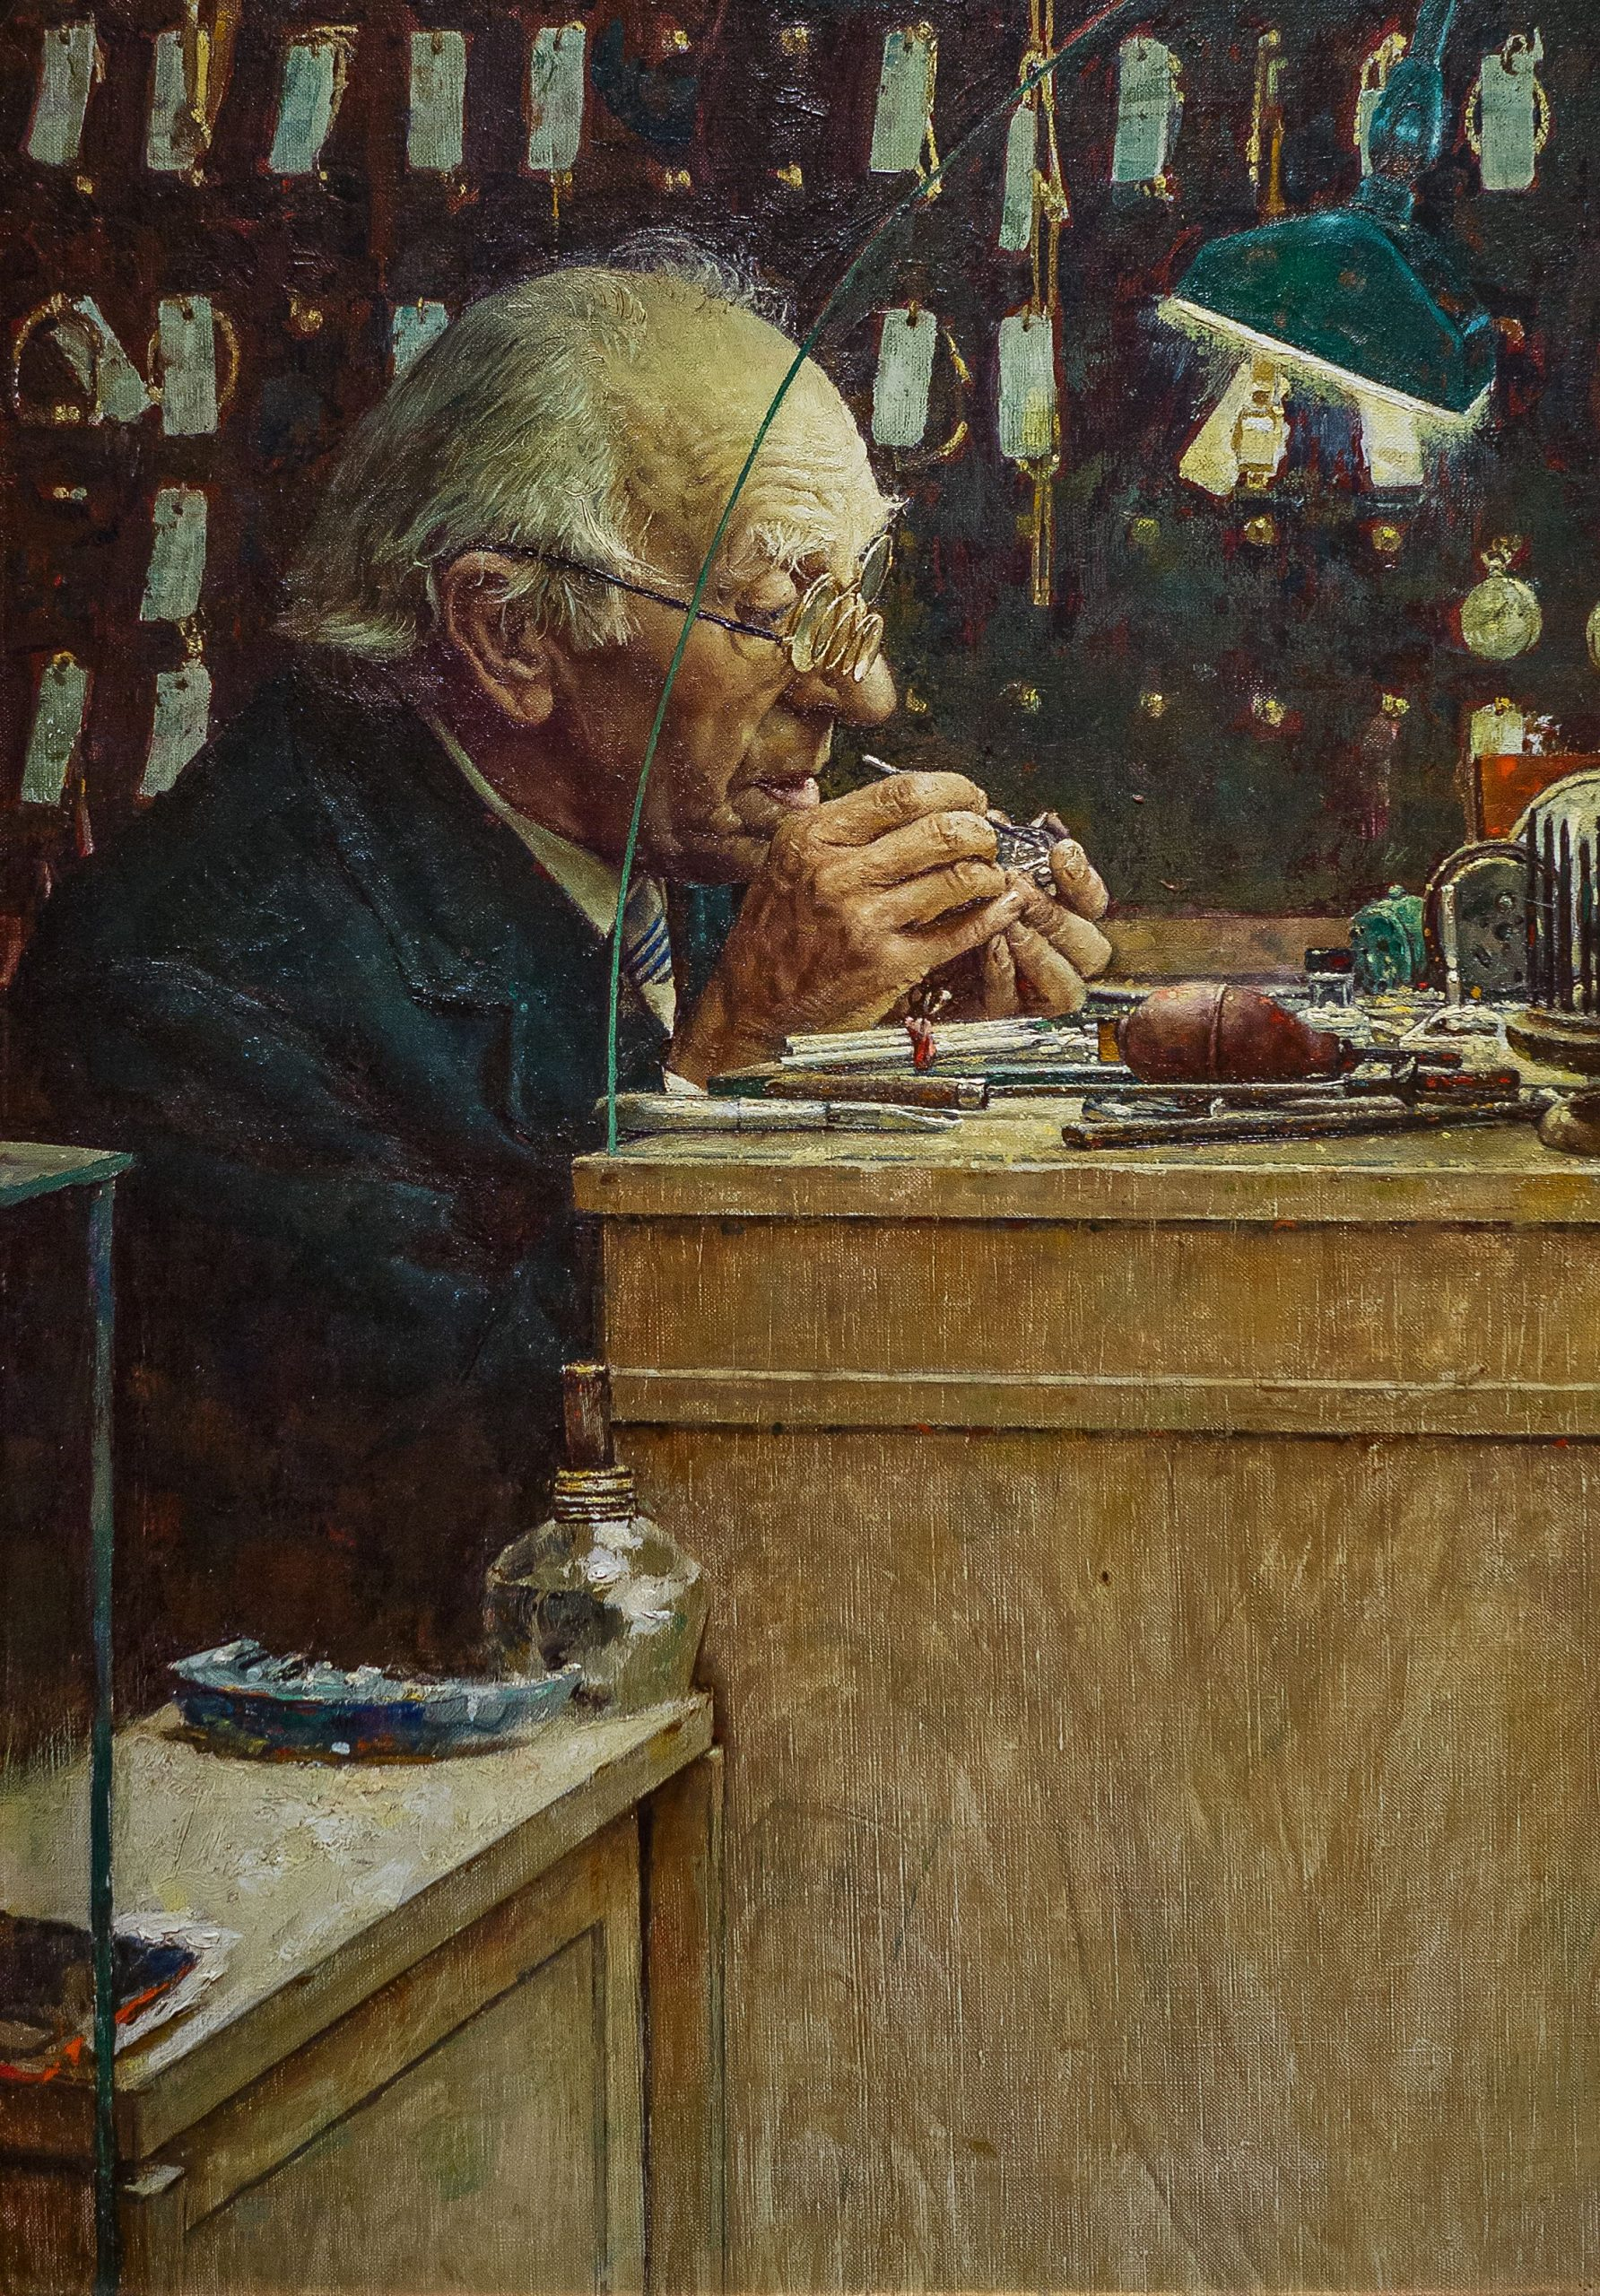 Watchmaker, Norman Rockwell